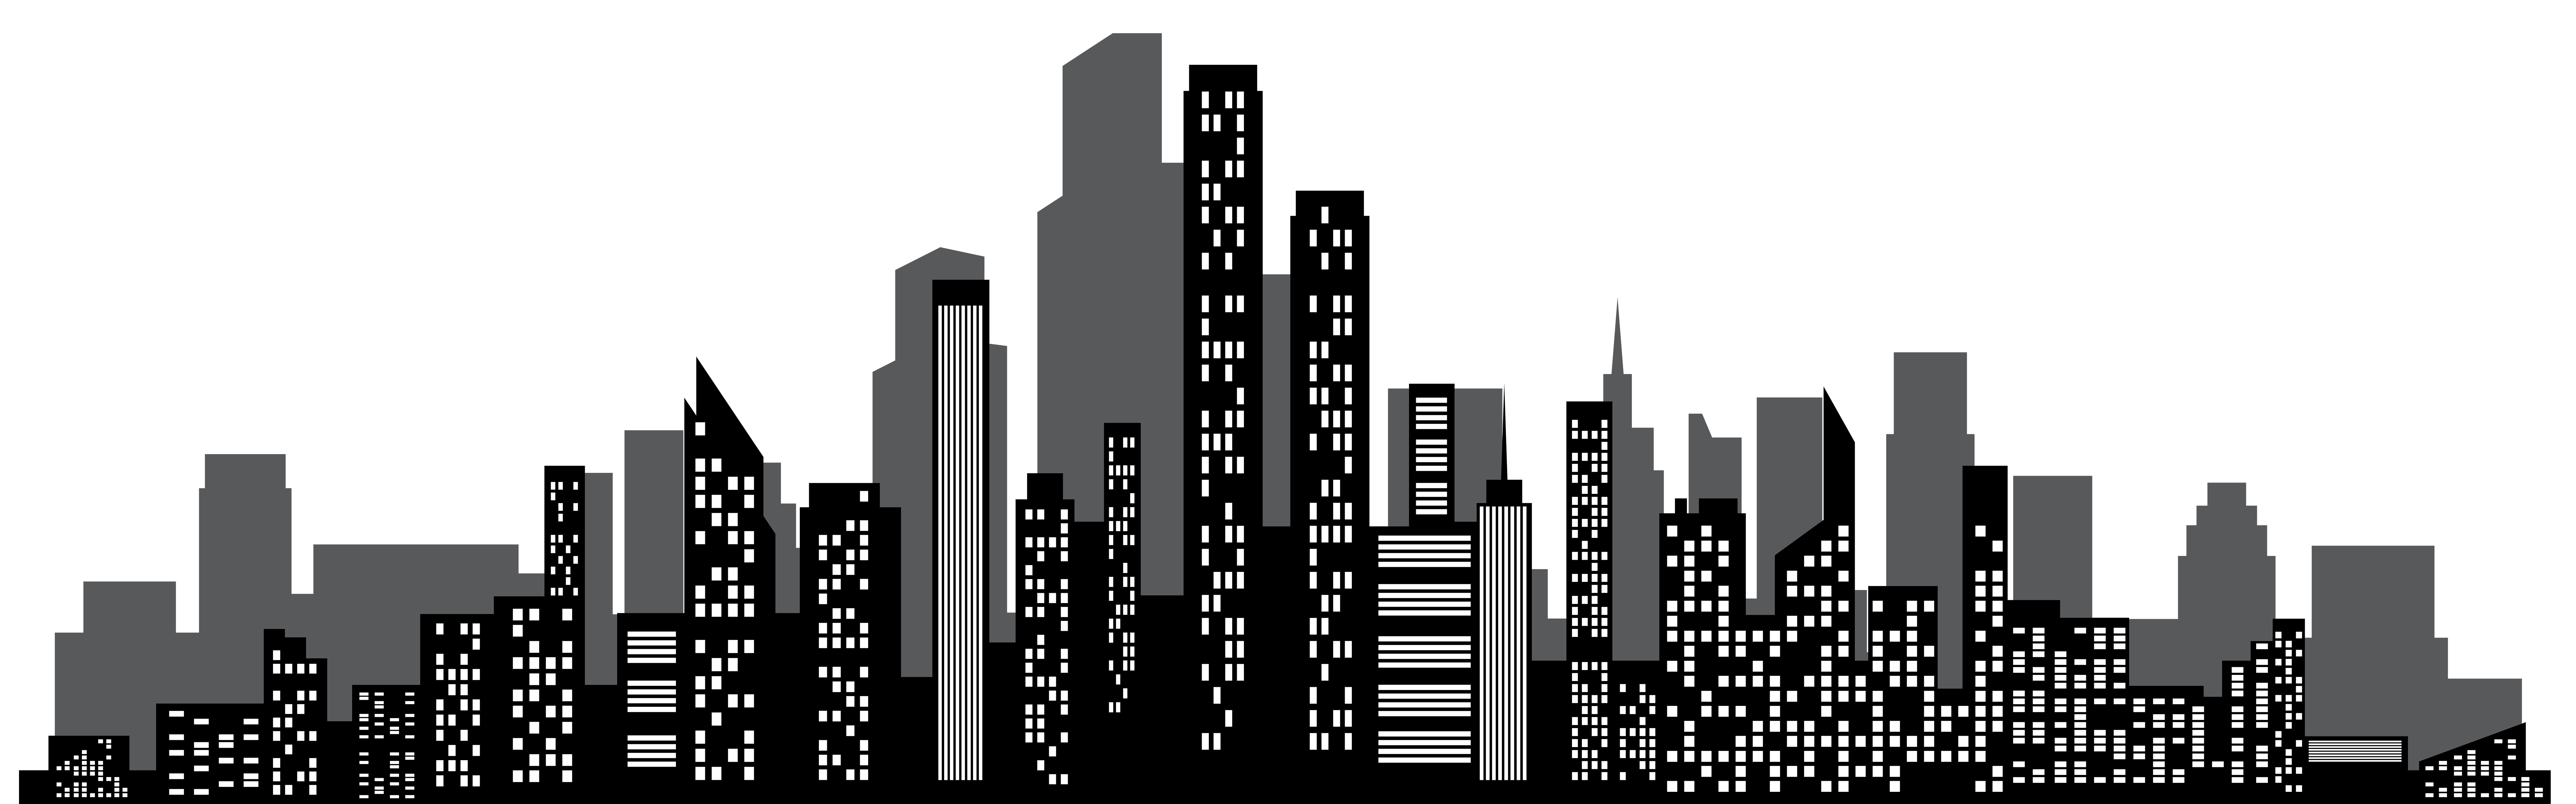 Clipart skyscrapers image black and white download Skyscraper Clipart | Free download best Skyscraper Clipart on ... image black and white download